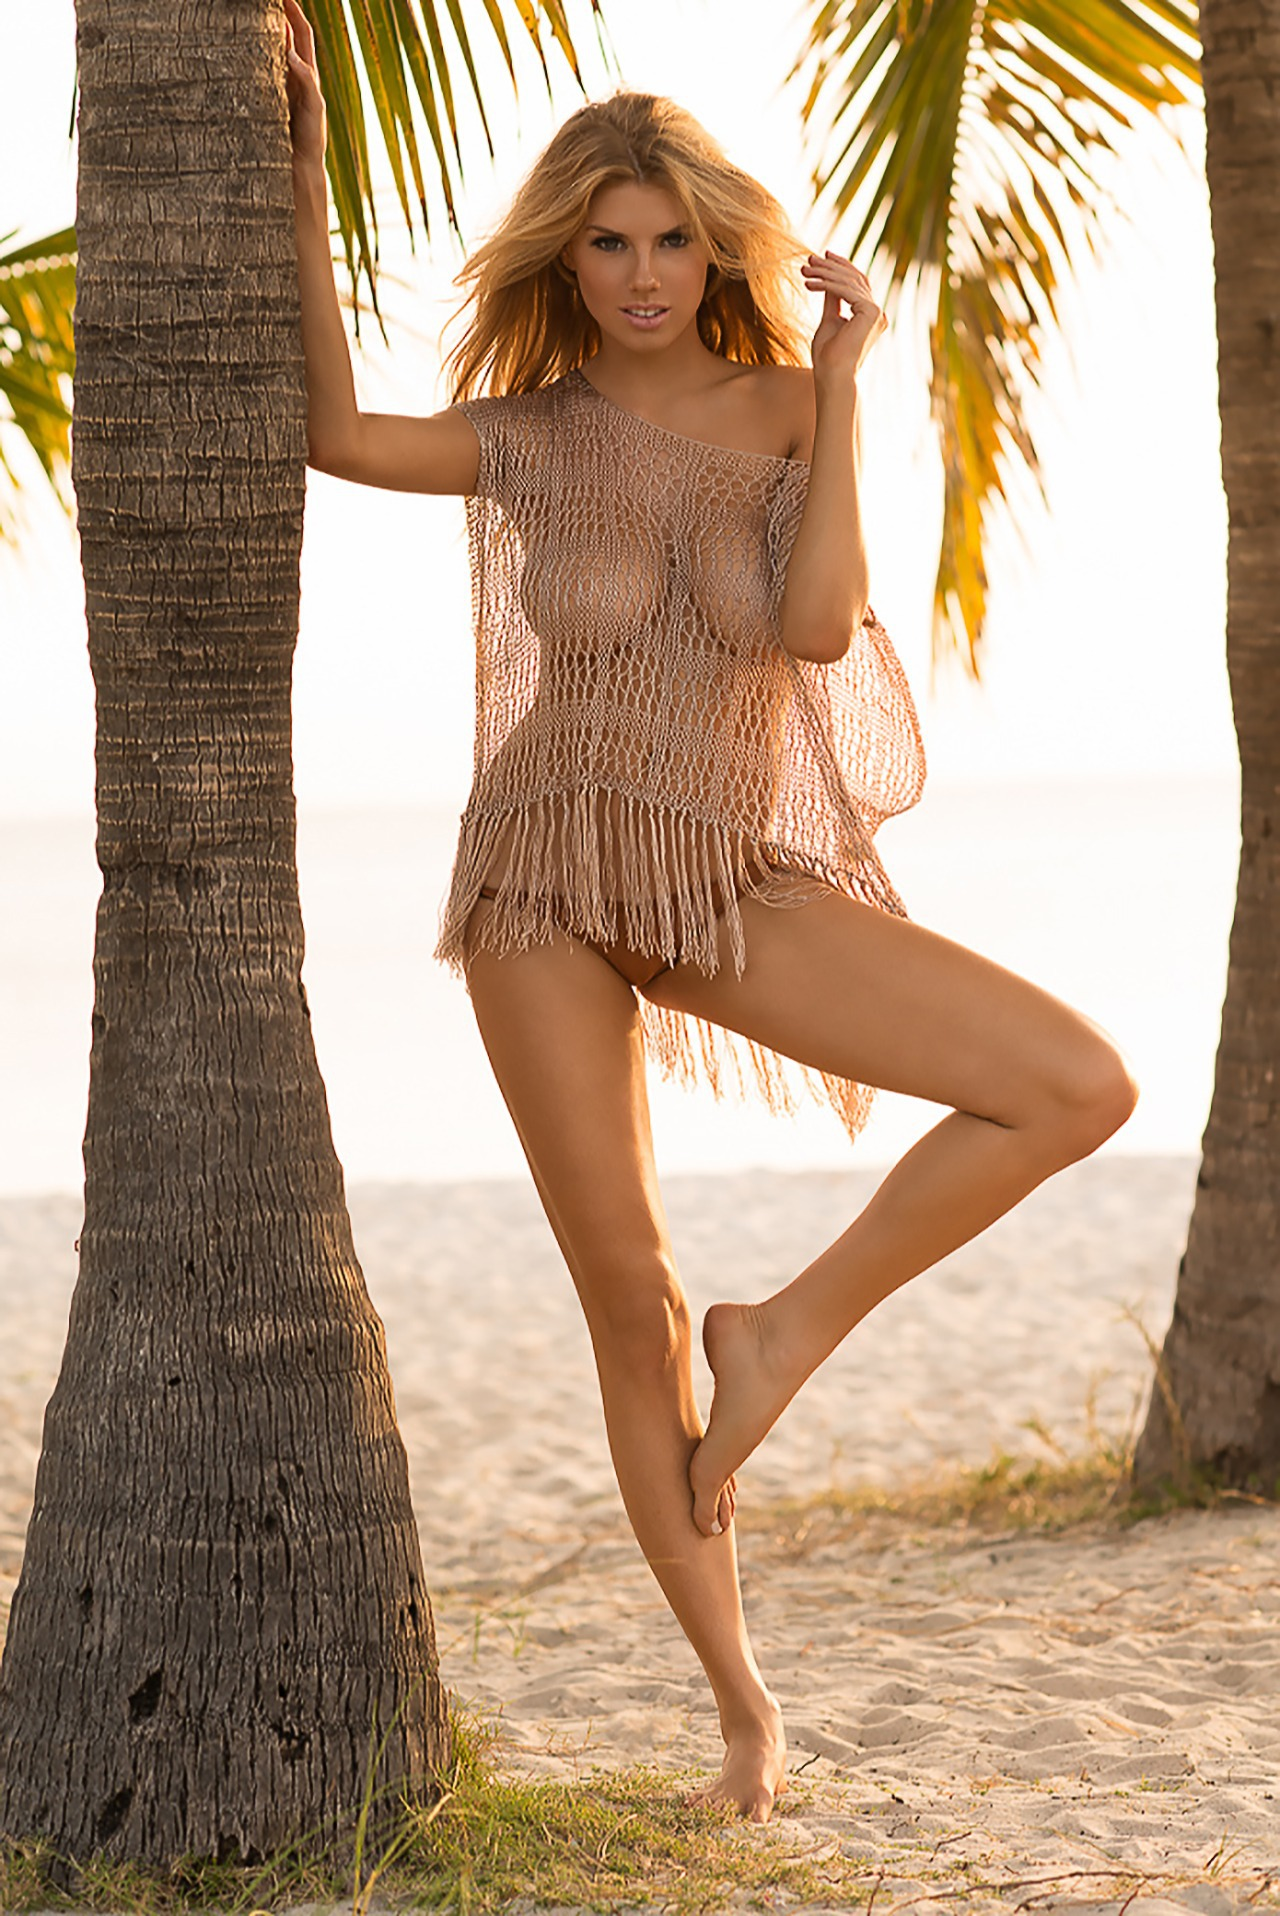 Charlotte McKinney Iphone Sexy Wallpapers